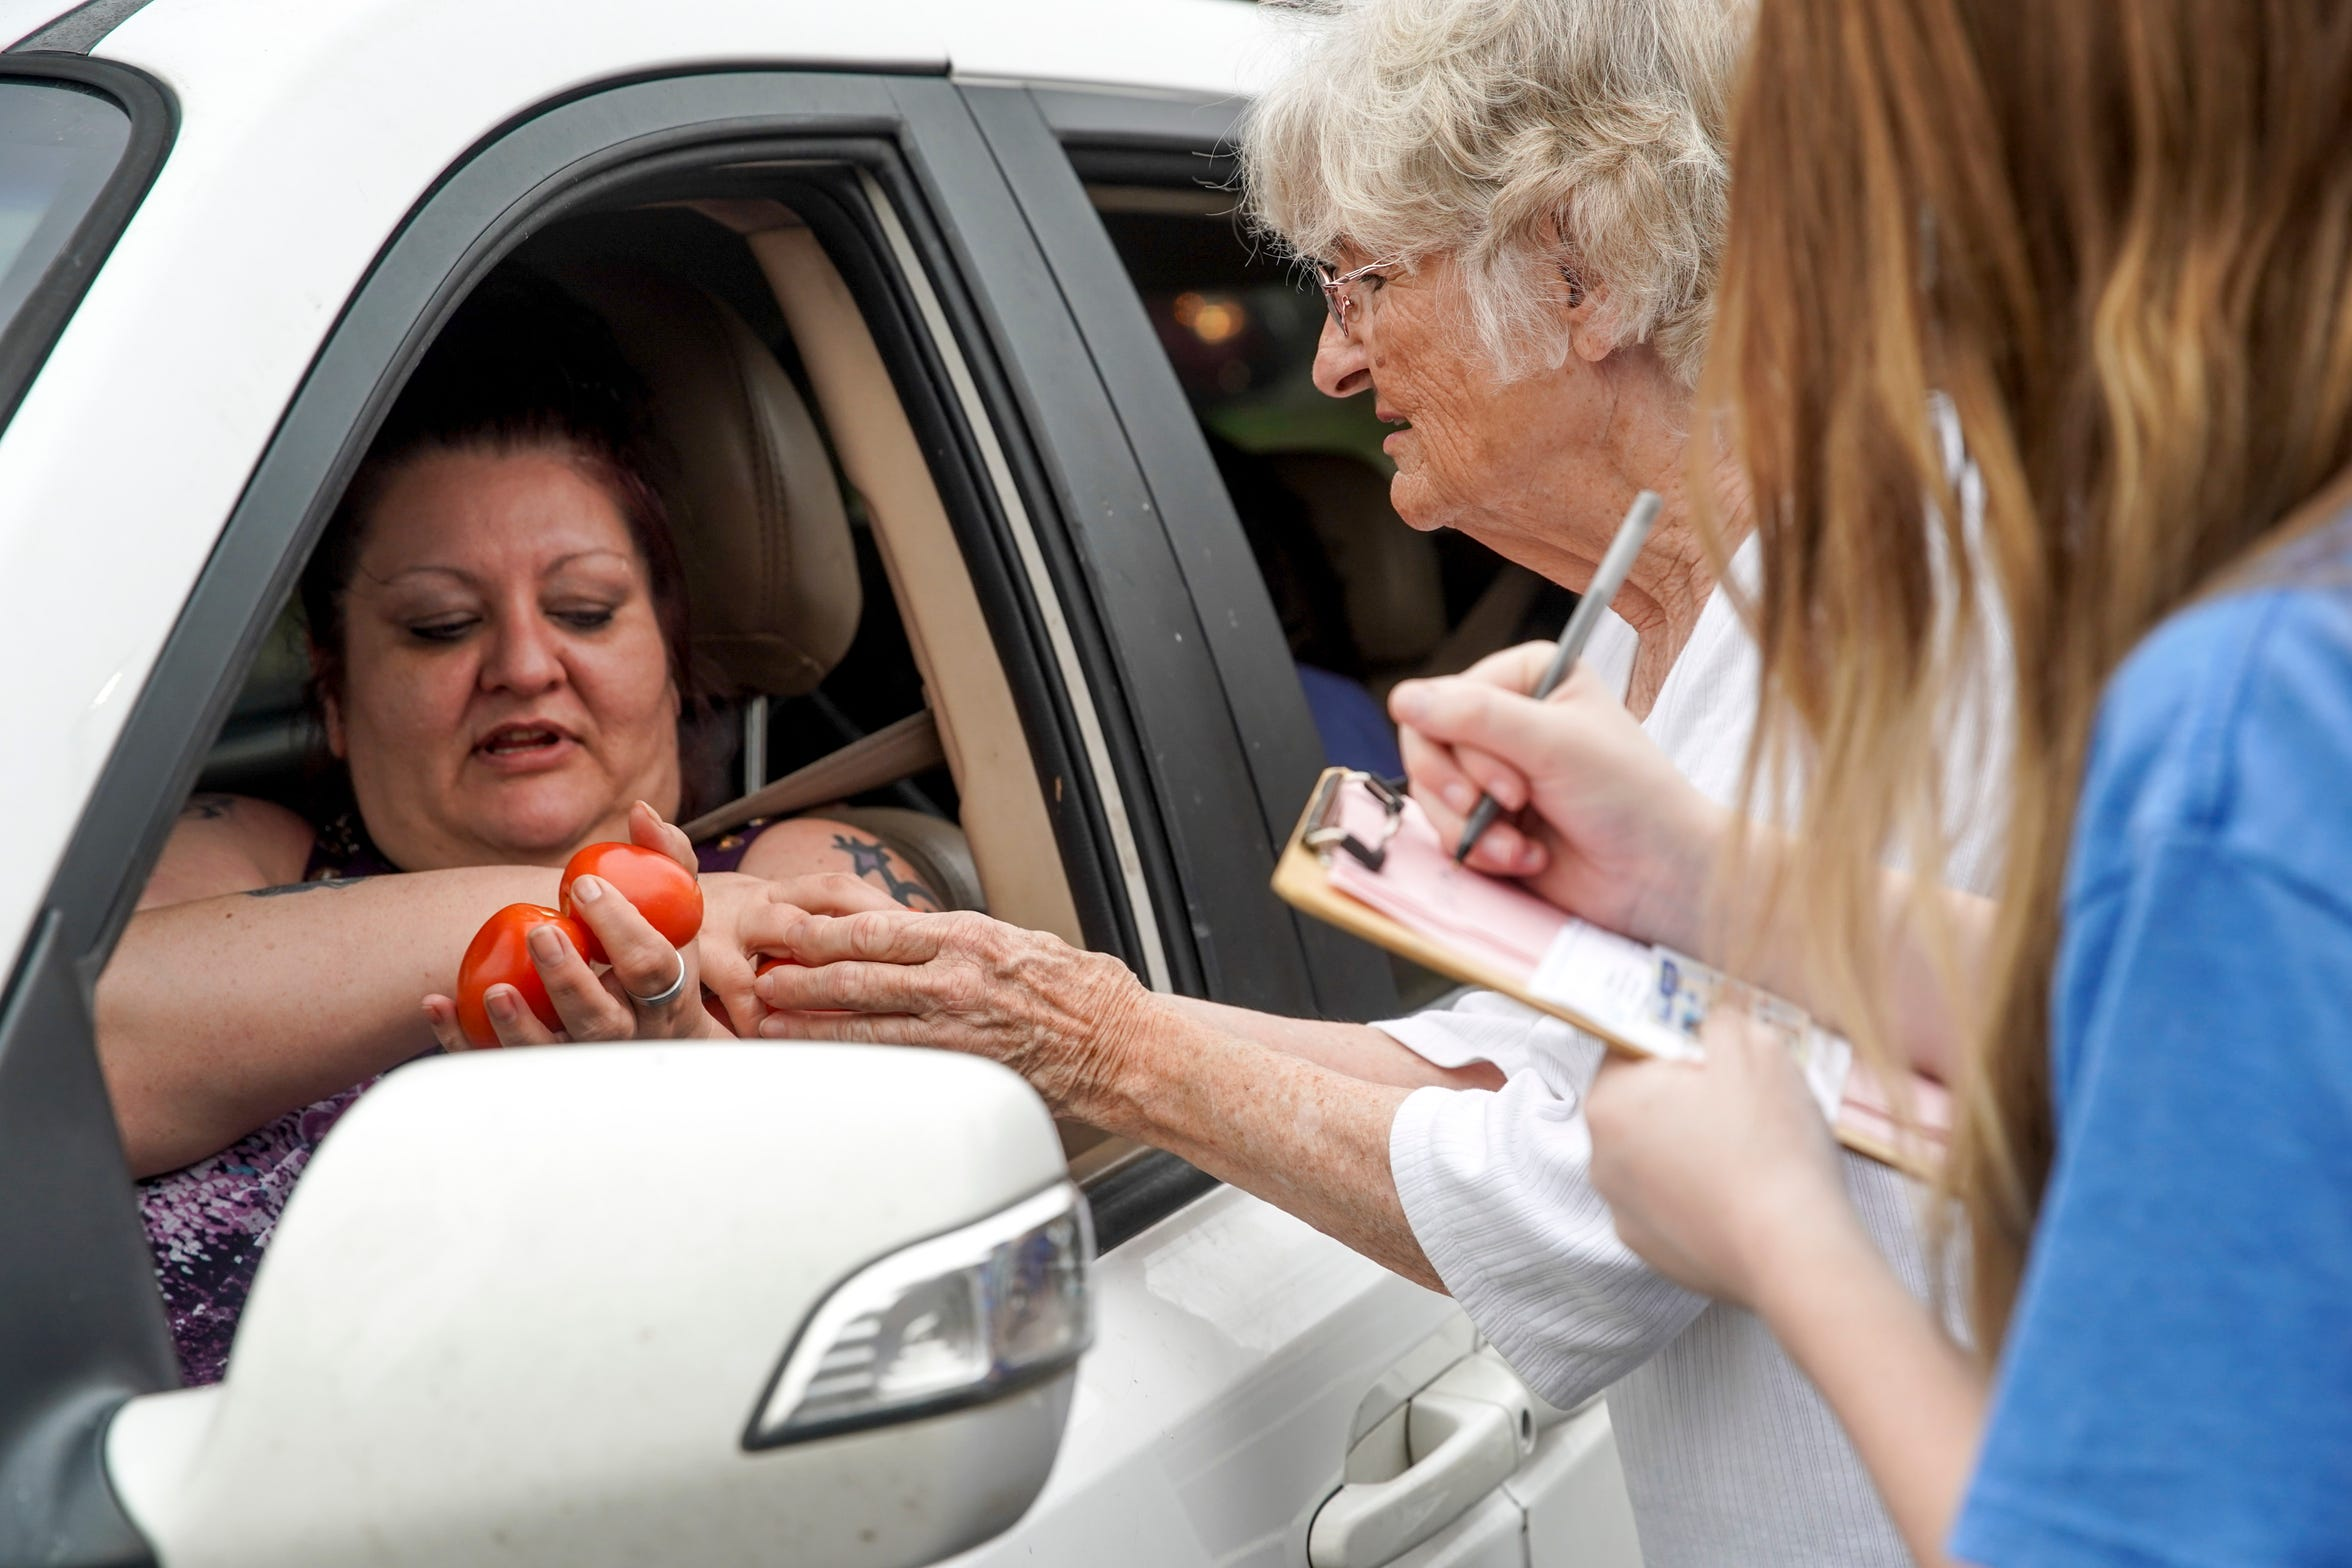 Molly Cook shares a handful of tomatoes with Urban Ministries clients at Madison Street United Methodist Church in Clarksville, Tenn., on Friday, March 27, 2020.